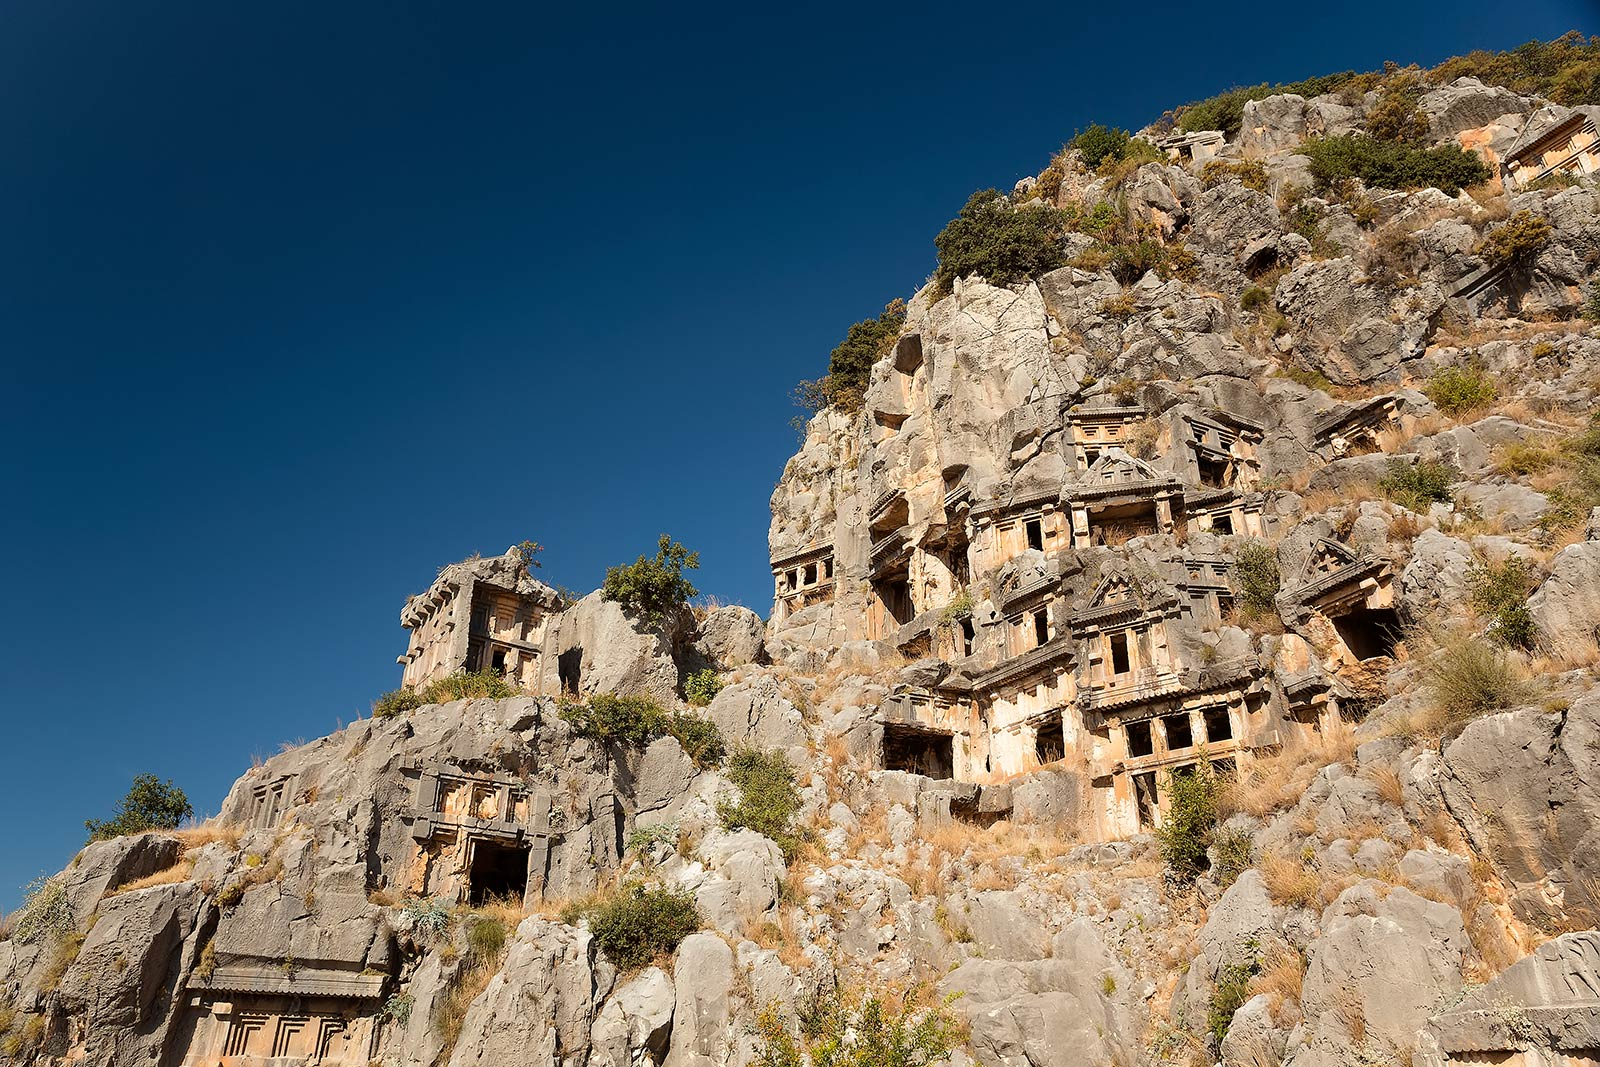 myra-demre-lycian-tombs-turkey-7